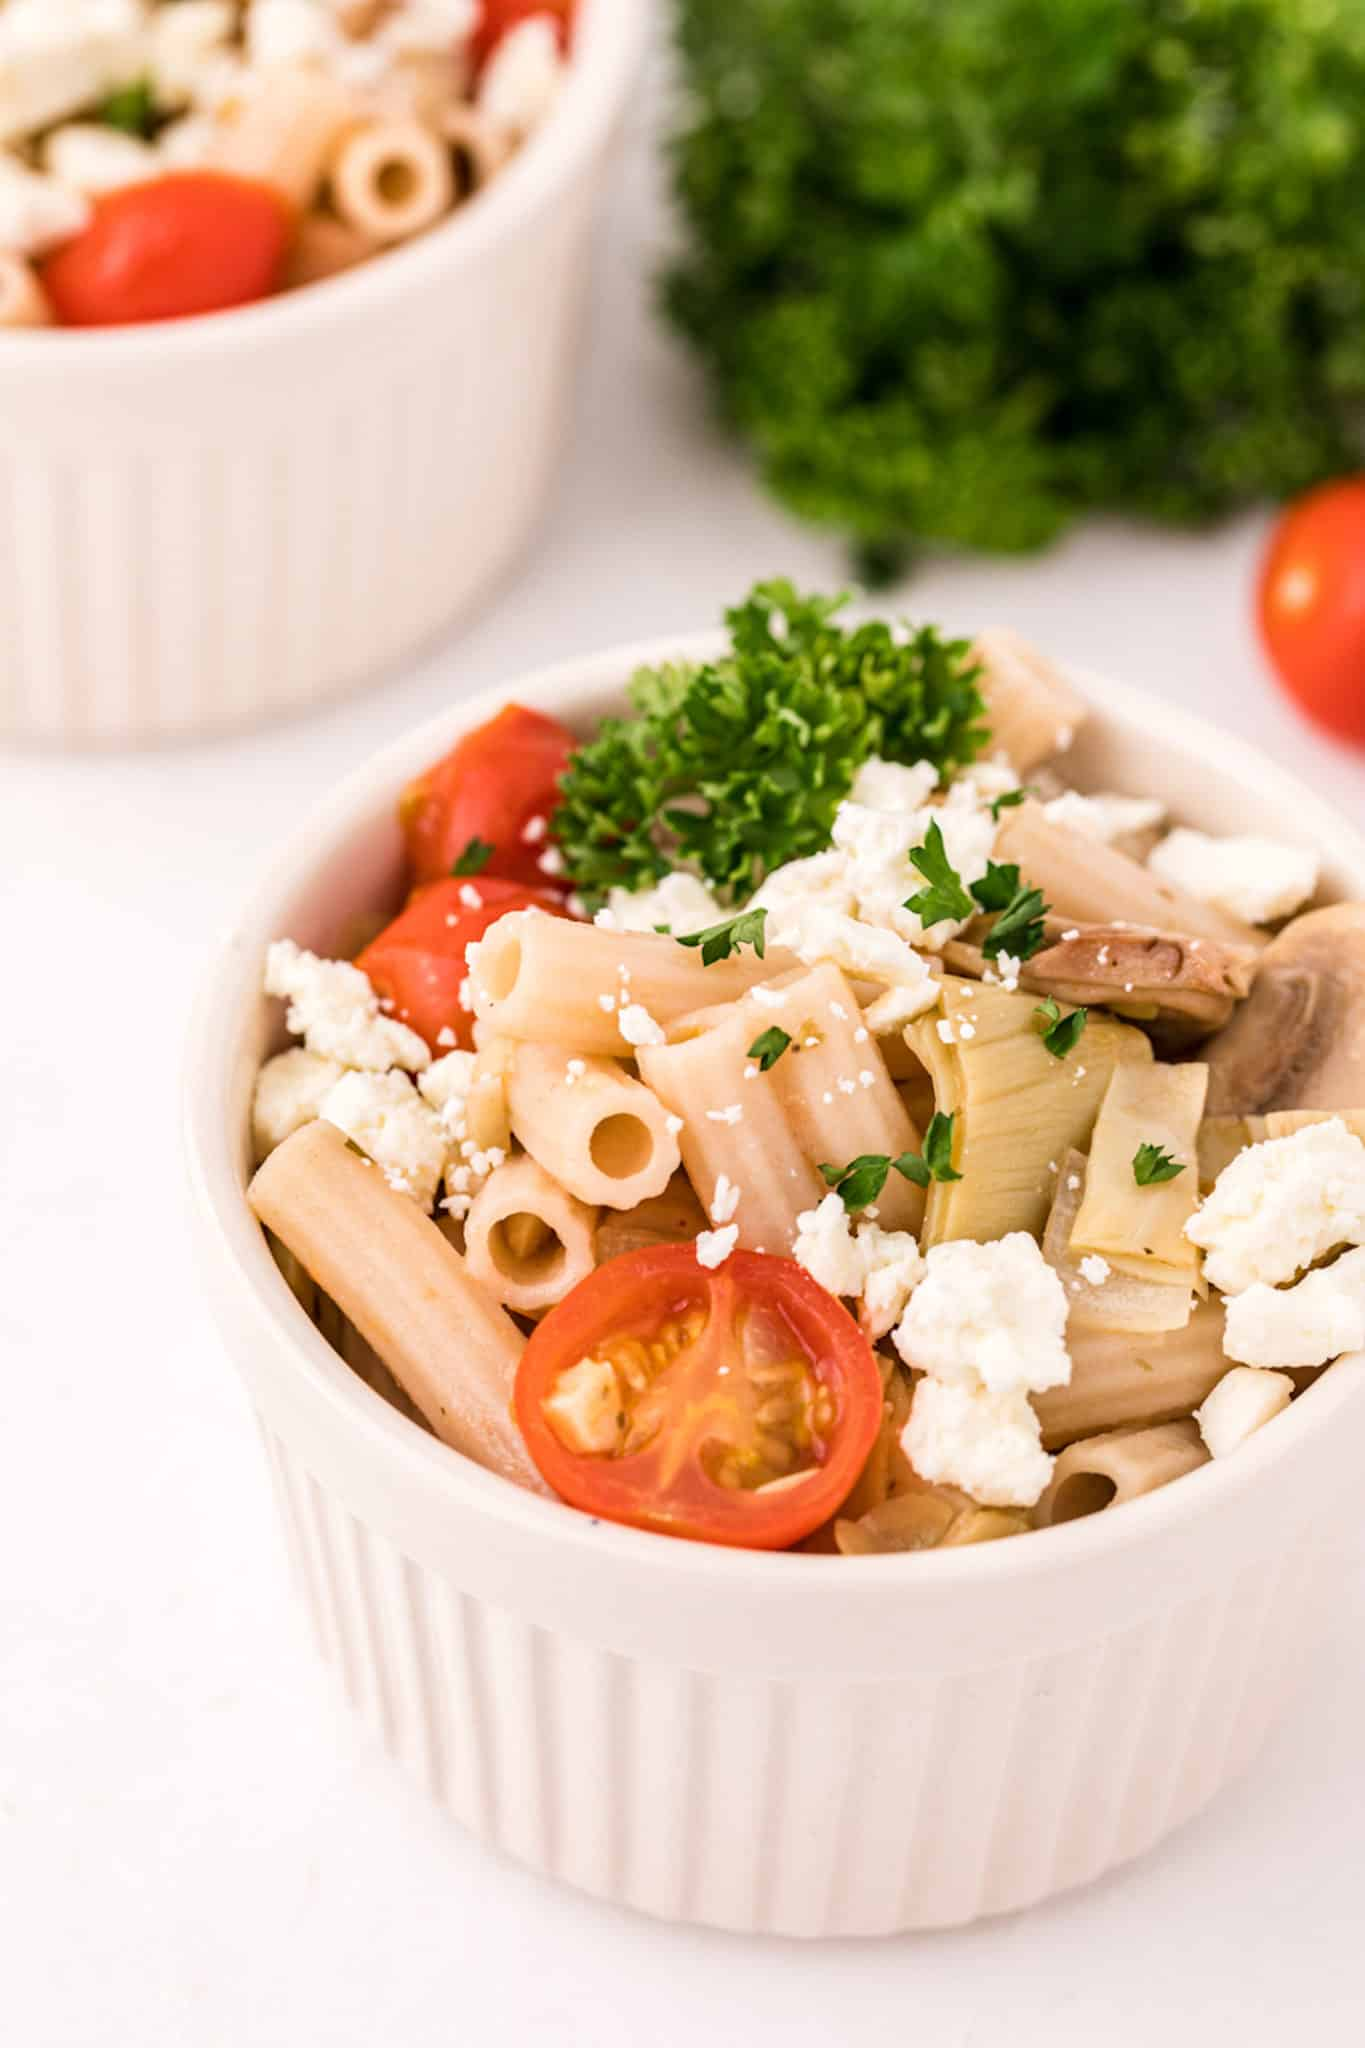 two bowls of vegetarian pasta with parsley on top